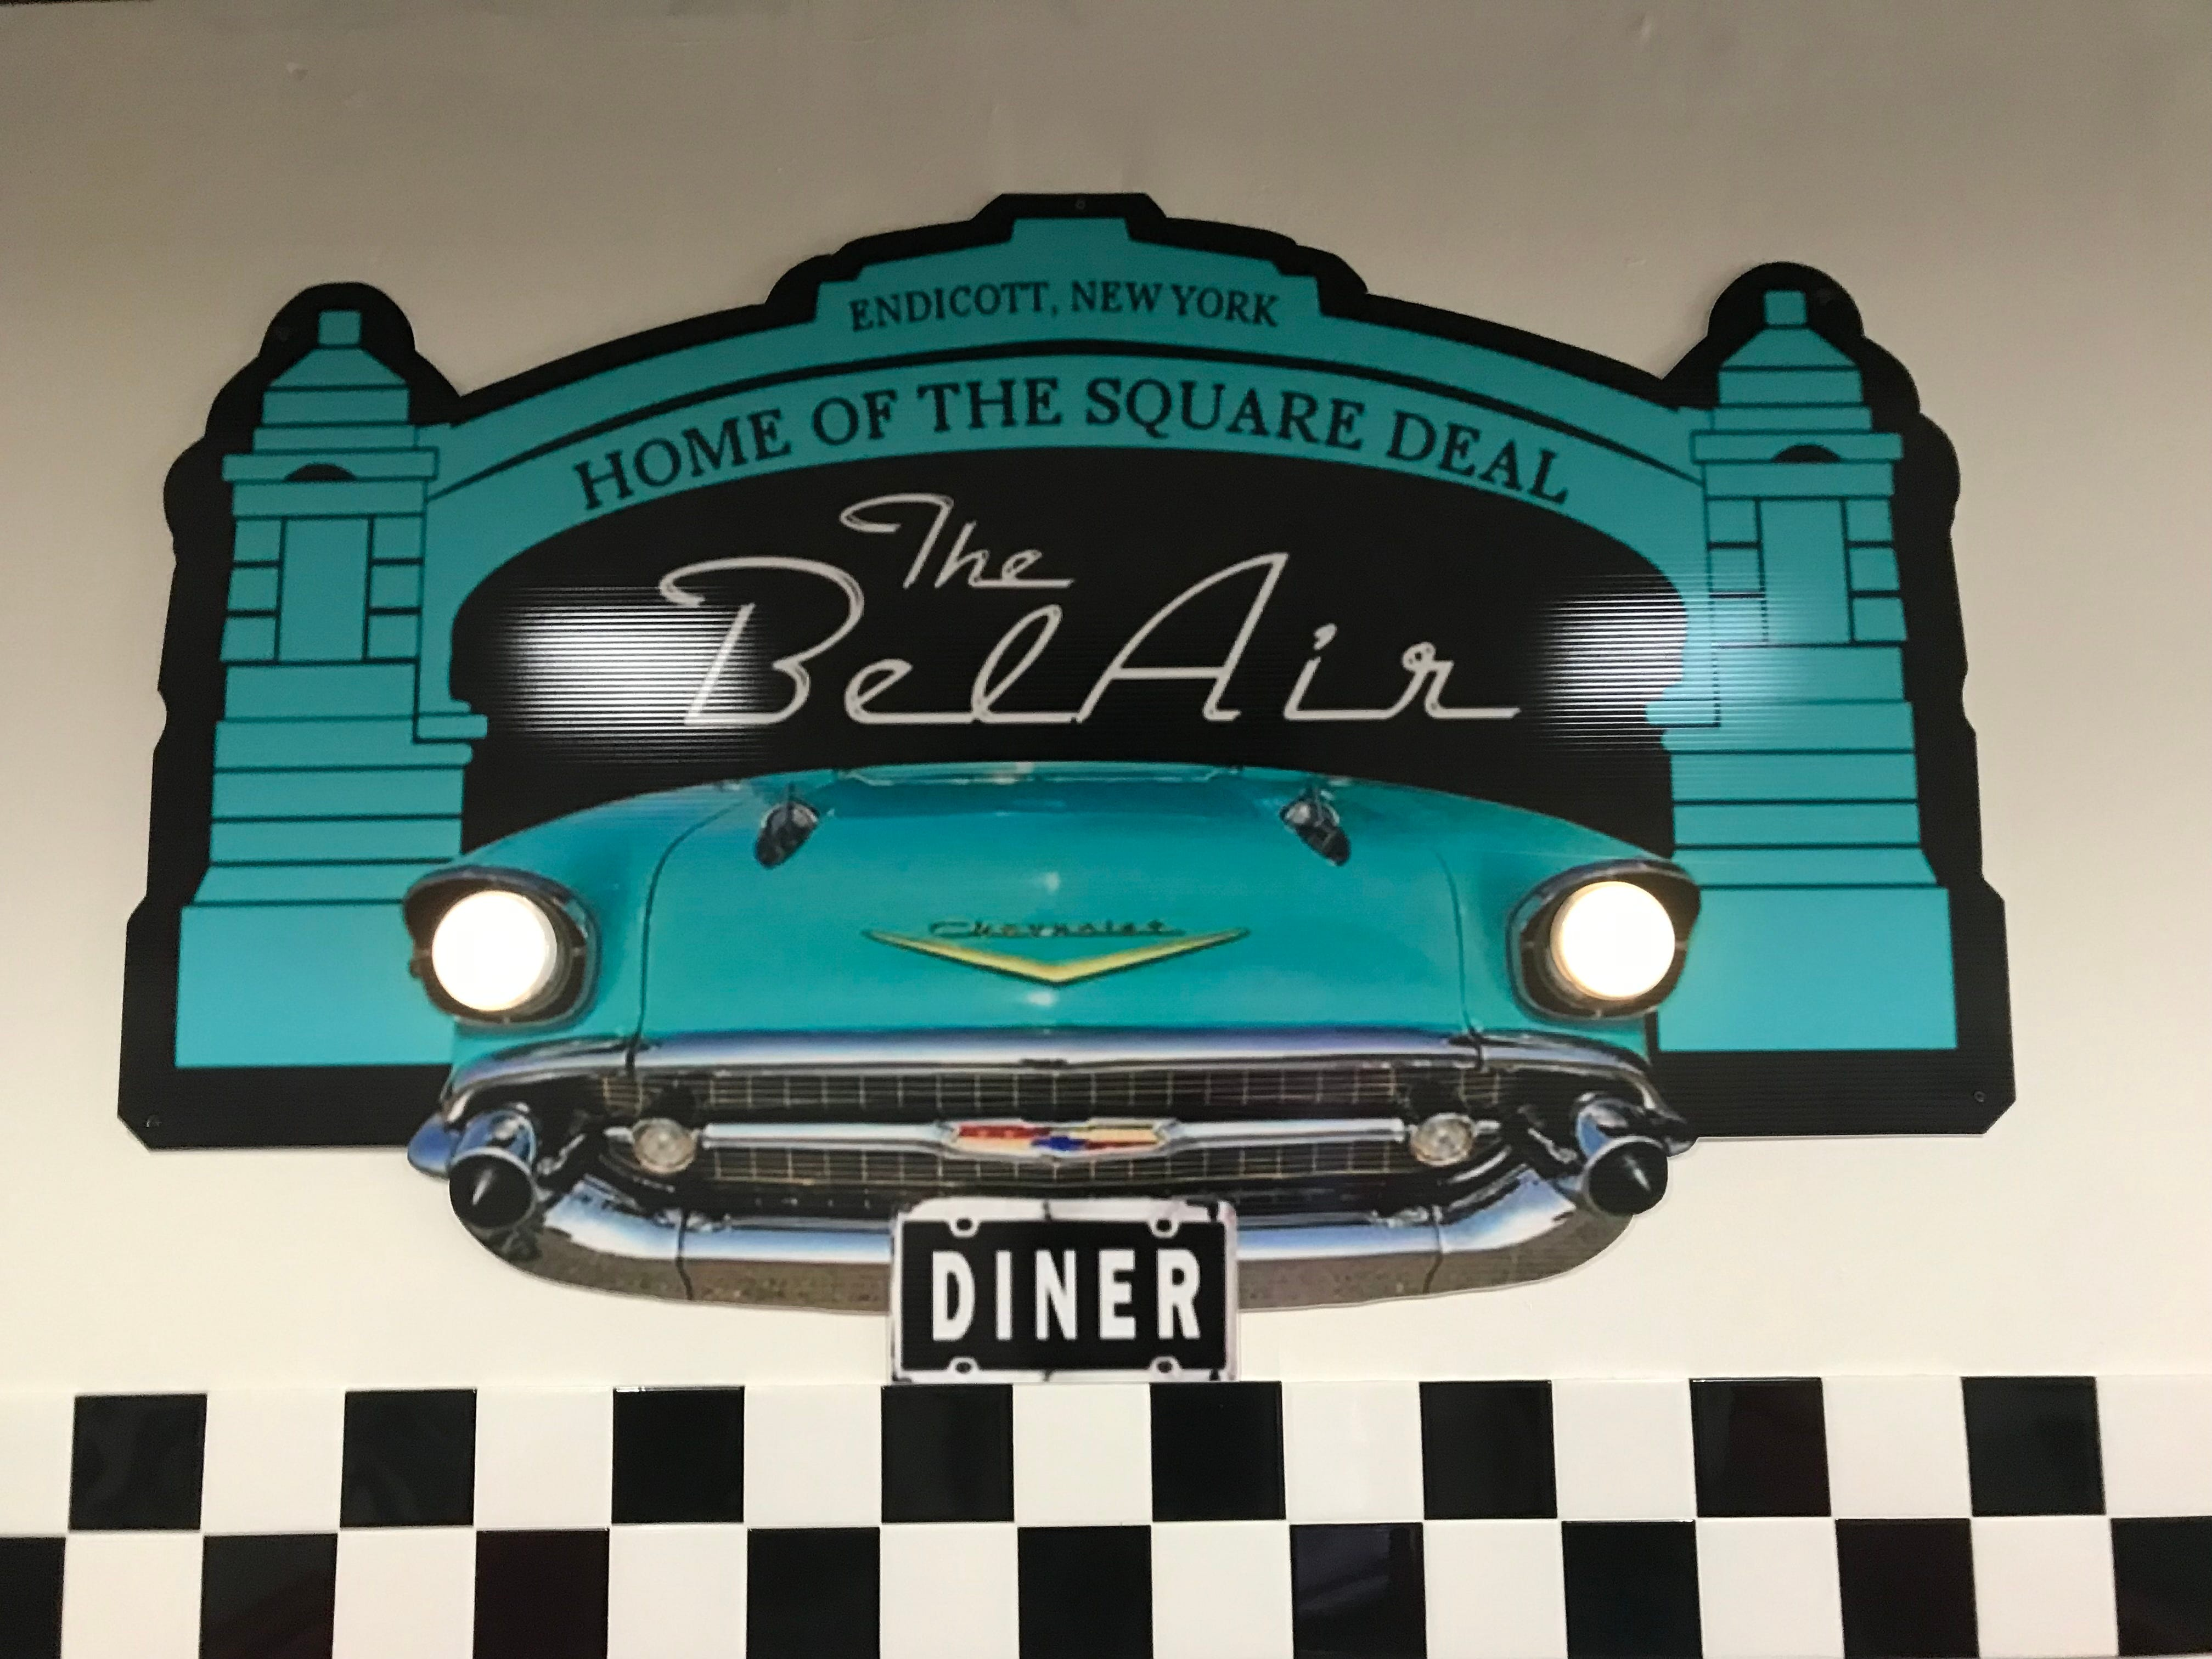 The BelAir BBQ Diner is located on 9 Washington Avenue in Endicott.